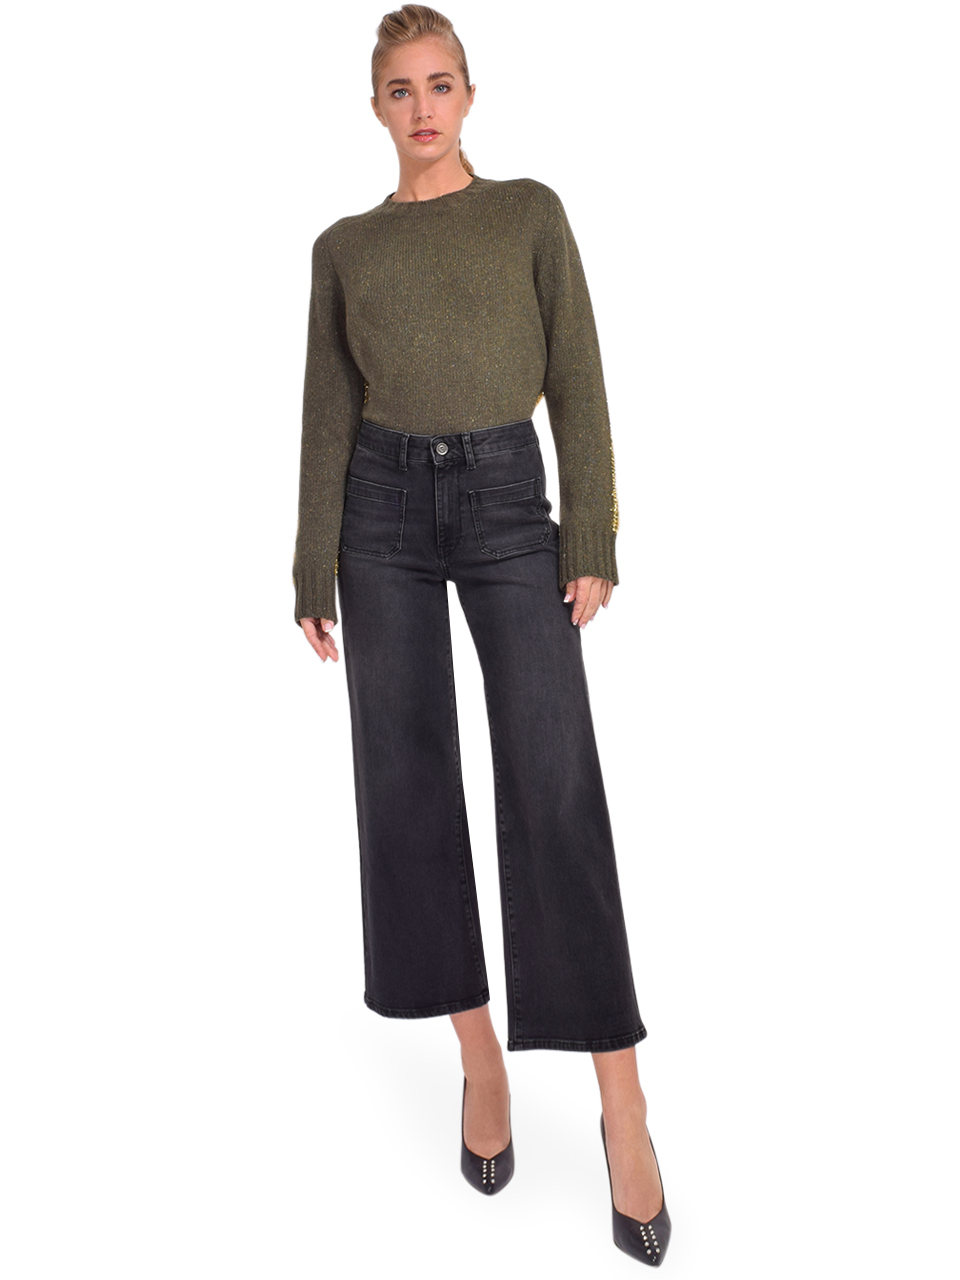 Ottod'Ame Cropped French Jeans in Black Full Outfit